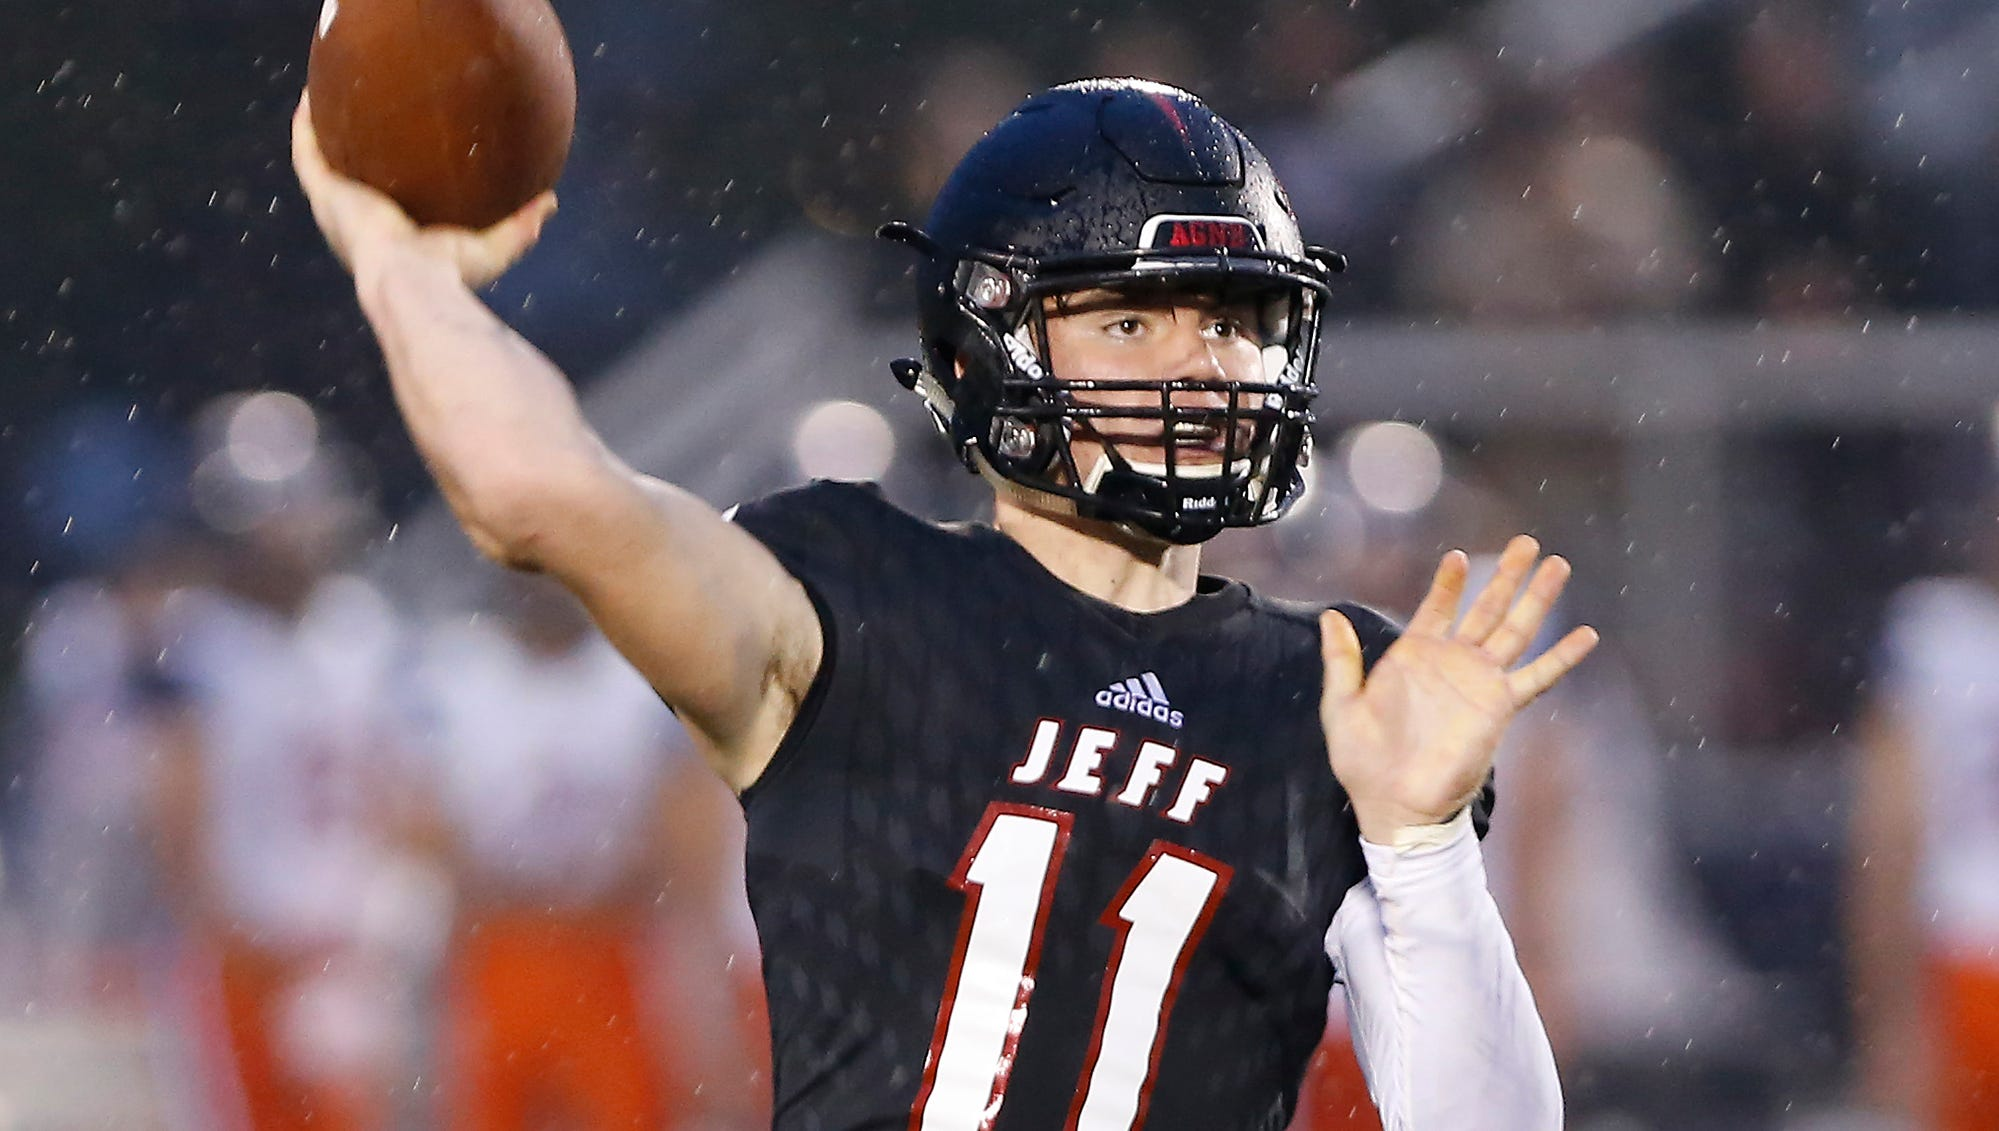 Lafayette Jeff quarterback Maximus Grimes with a touchdown pass to Zion Austin to put the Bronchos up 17-7 over Harrison in the second quarter Friday, September 7, 2018, at Scheumann Stadium.